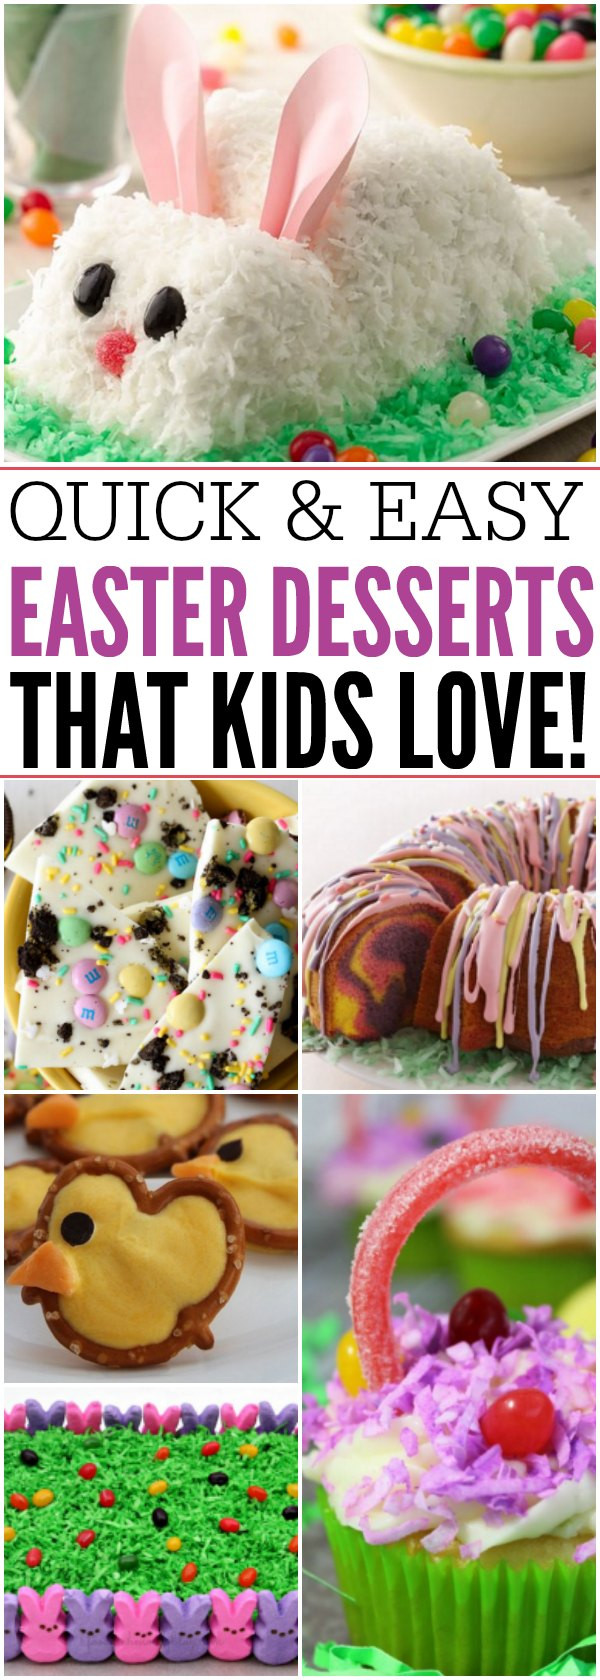 Quick Easy Easter Desserts  16 Quick and Easy Easter Dessert Recipes That Everyone